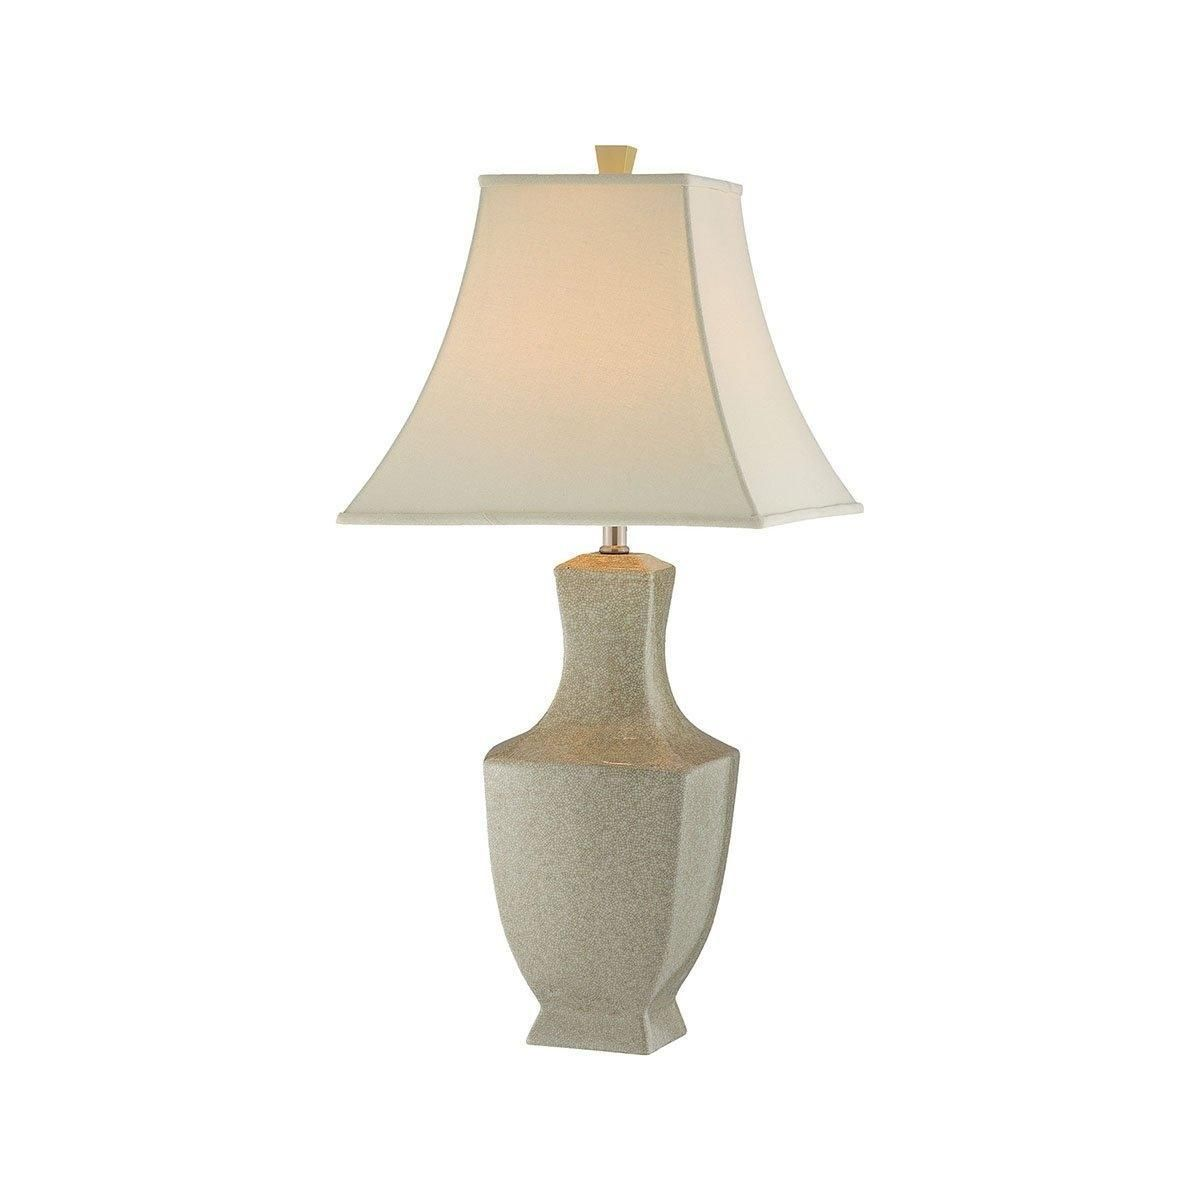 Honora Table Lamp Stein World 37859 Products